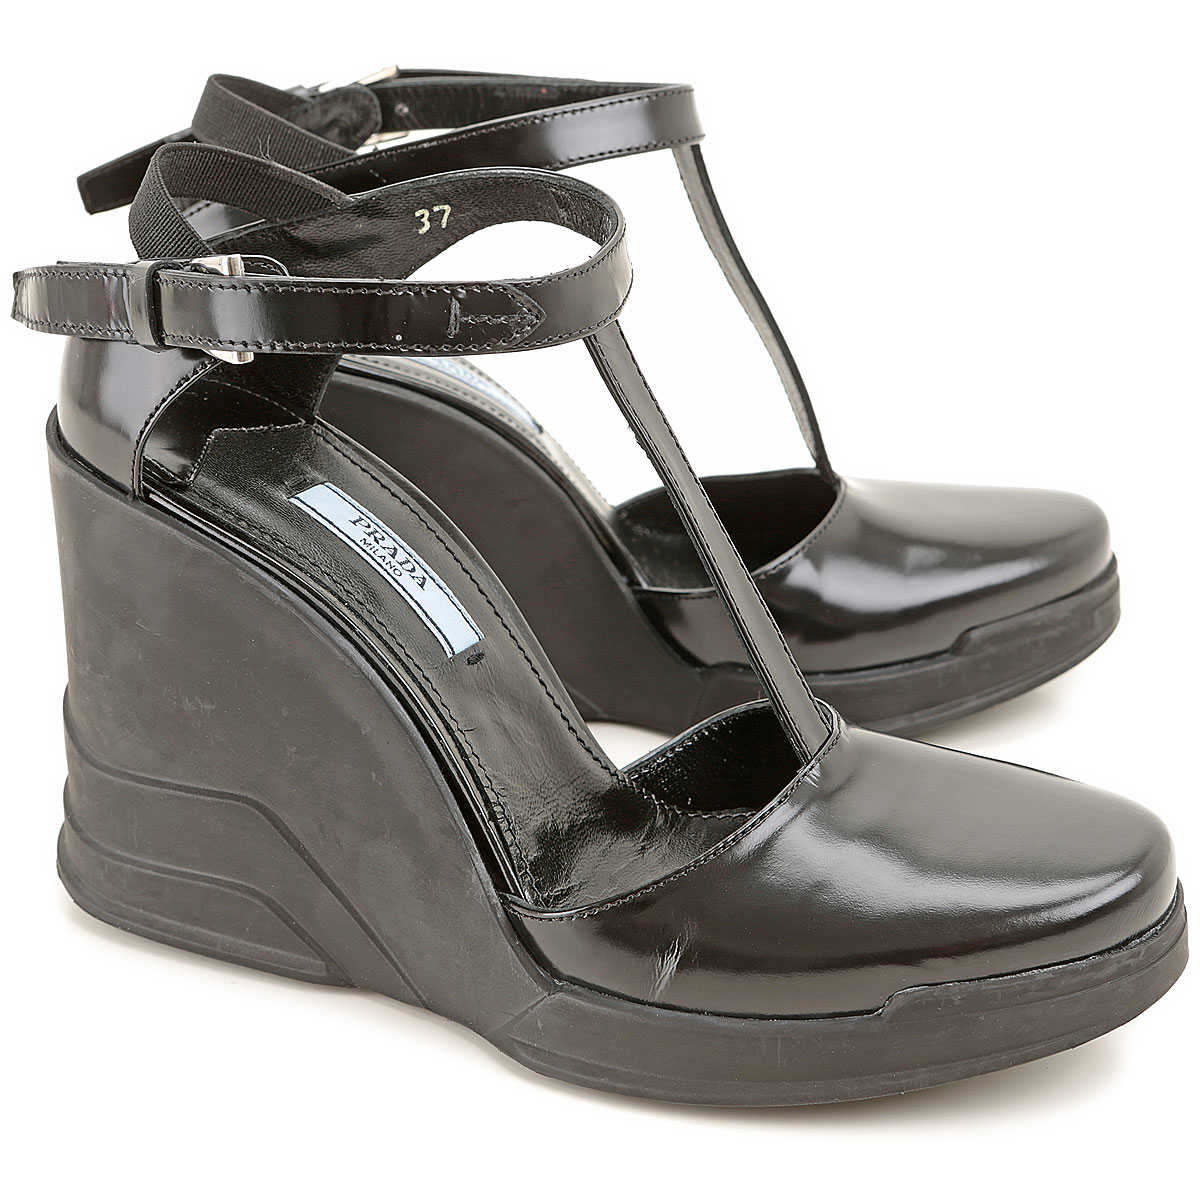 Prada Wedges for Women On Sale in Outlet Black SE - GOOFASH